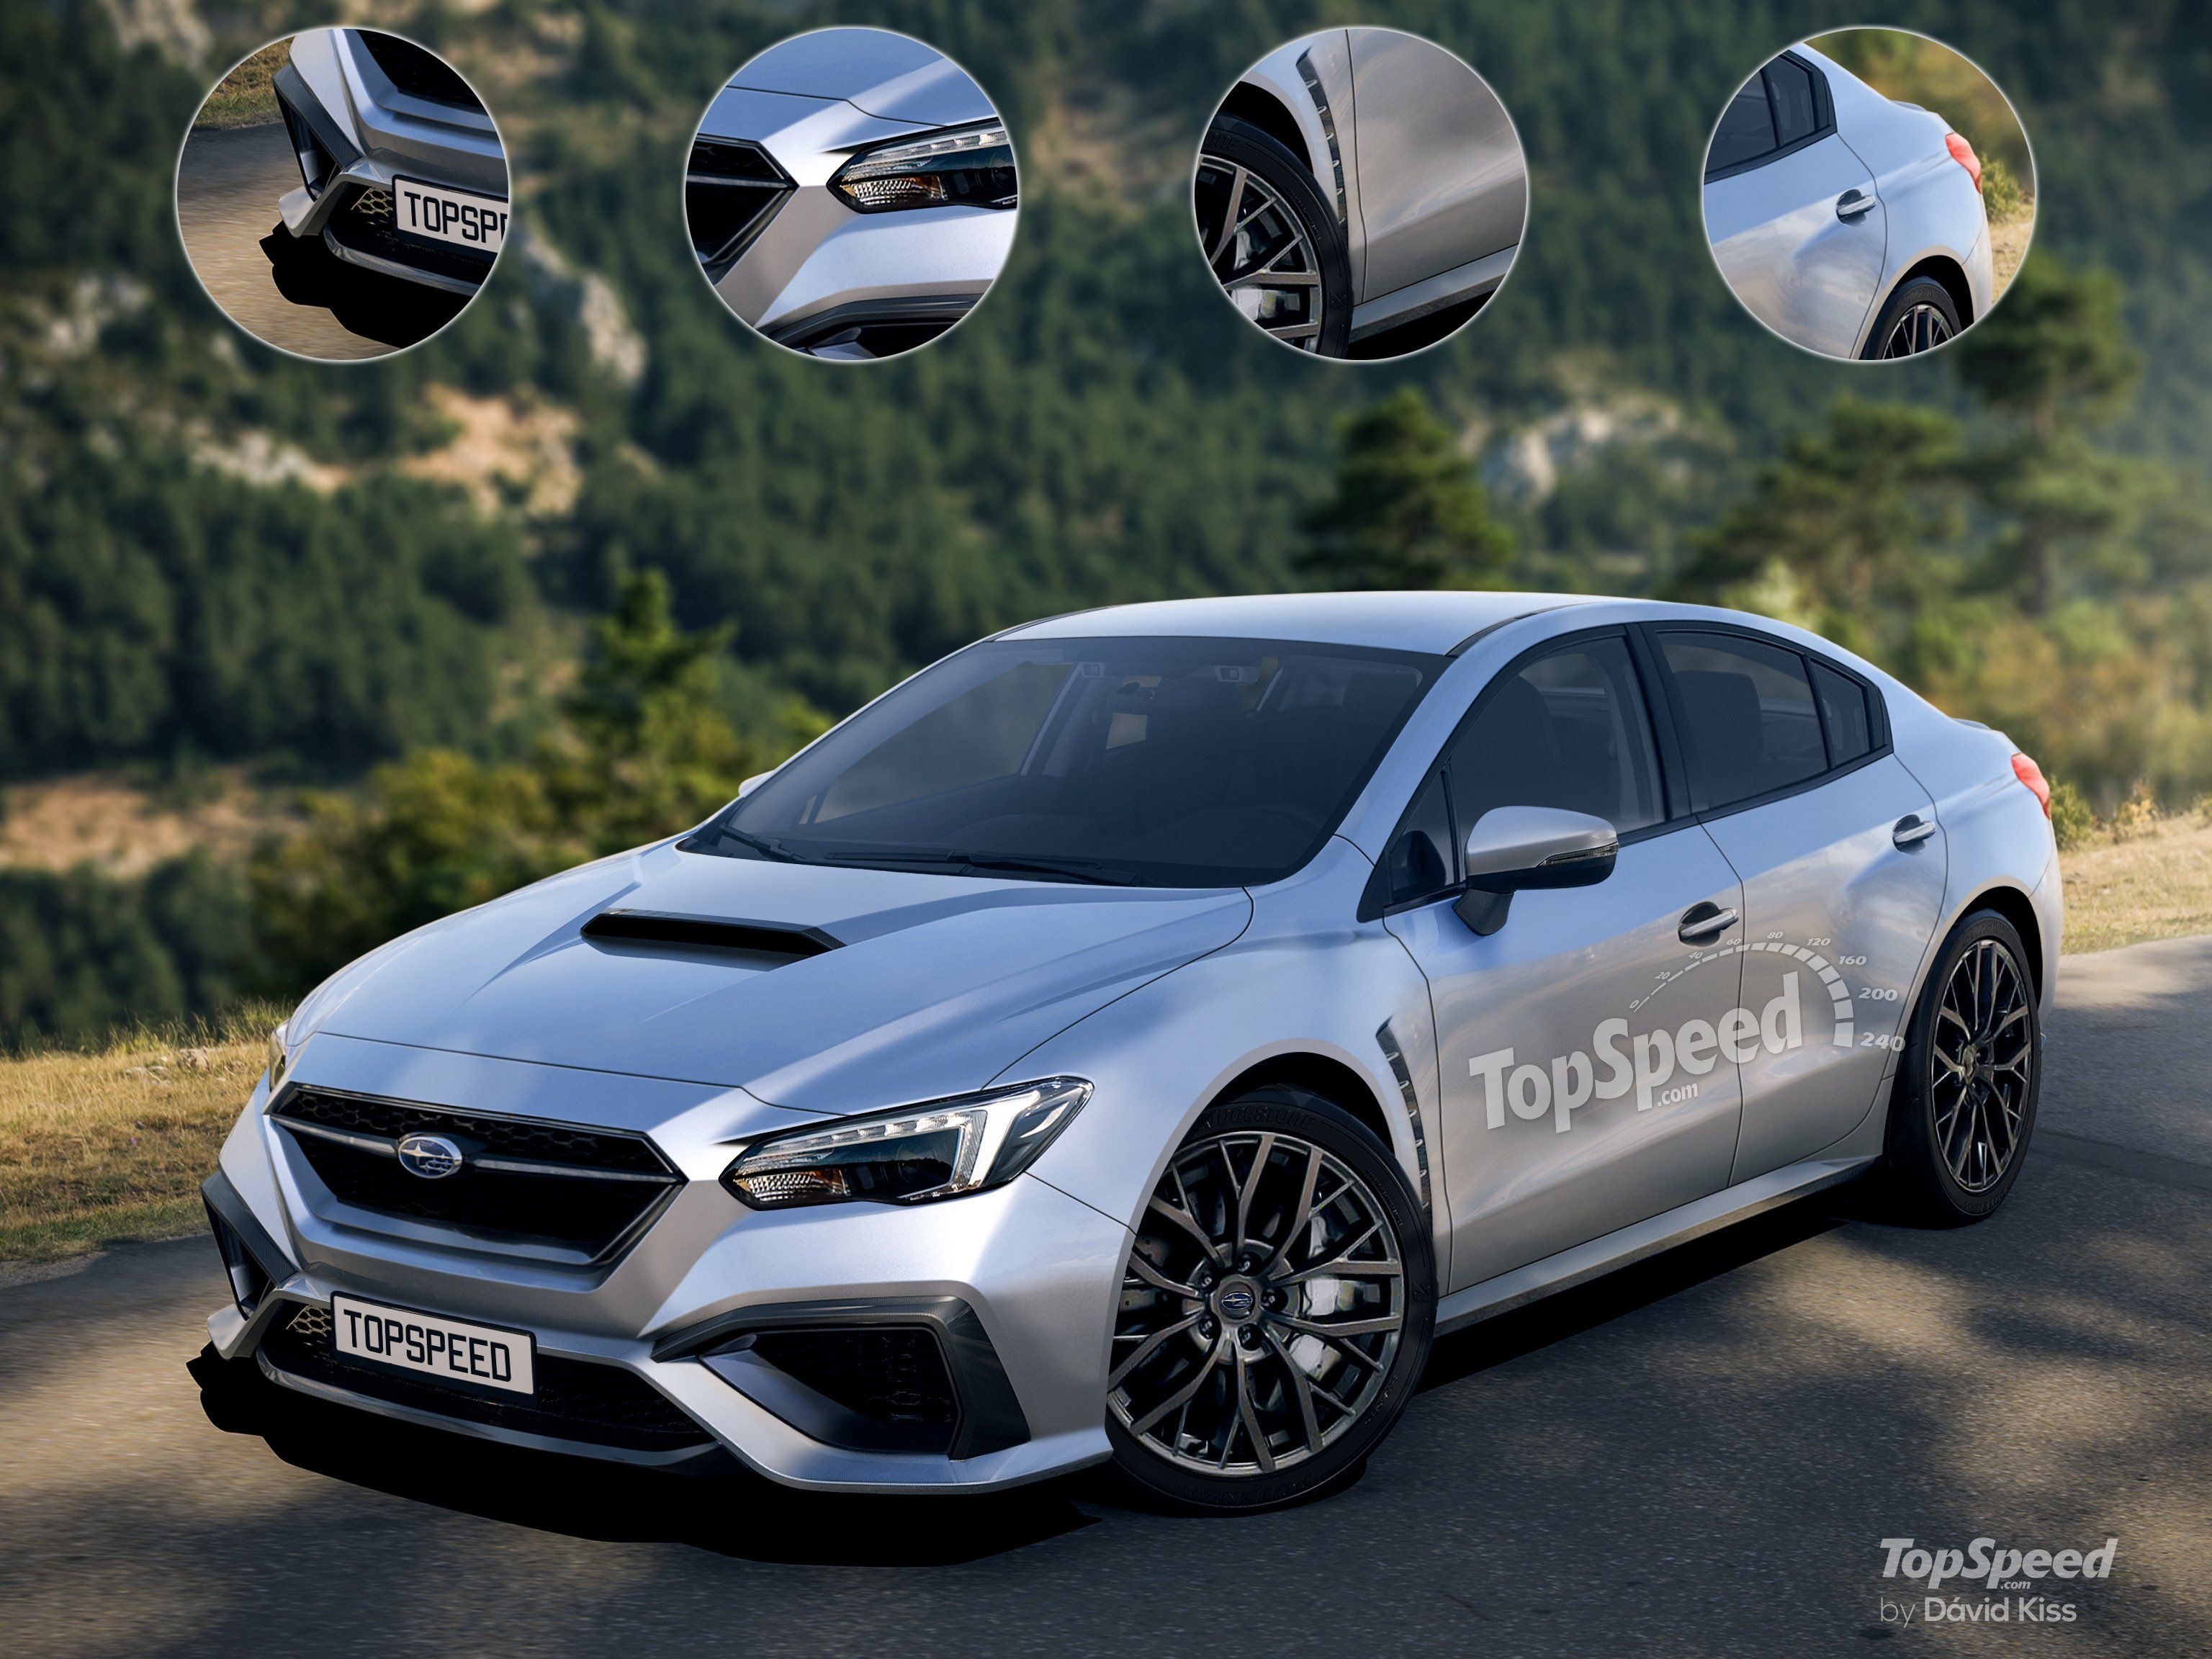 Expert Review Of The Subaru Eyesight Exterior 2020 Provides The Latest Look At Trim Level Features And Specs Performance Safe Subaru Wrx Subaru Hatchback Wrx